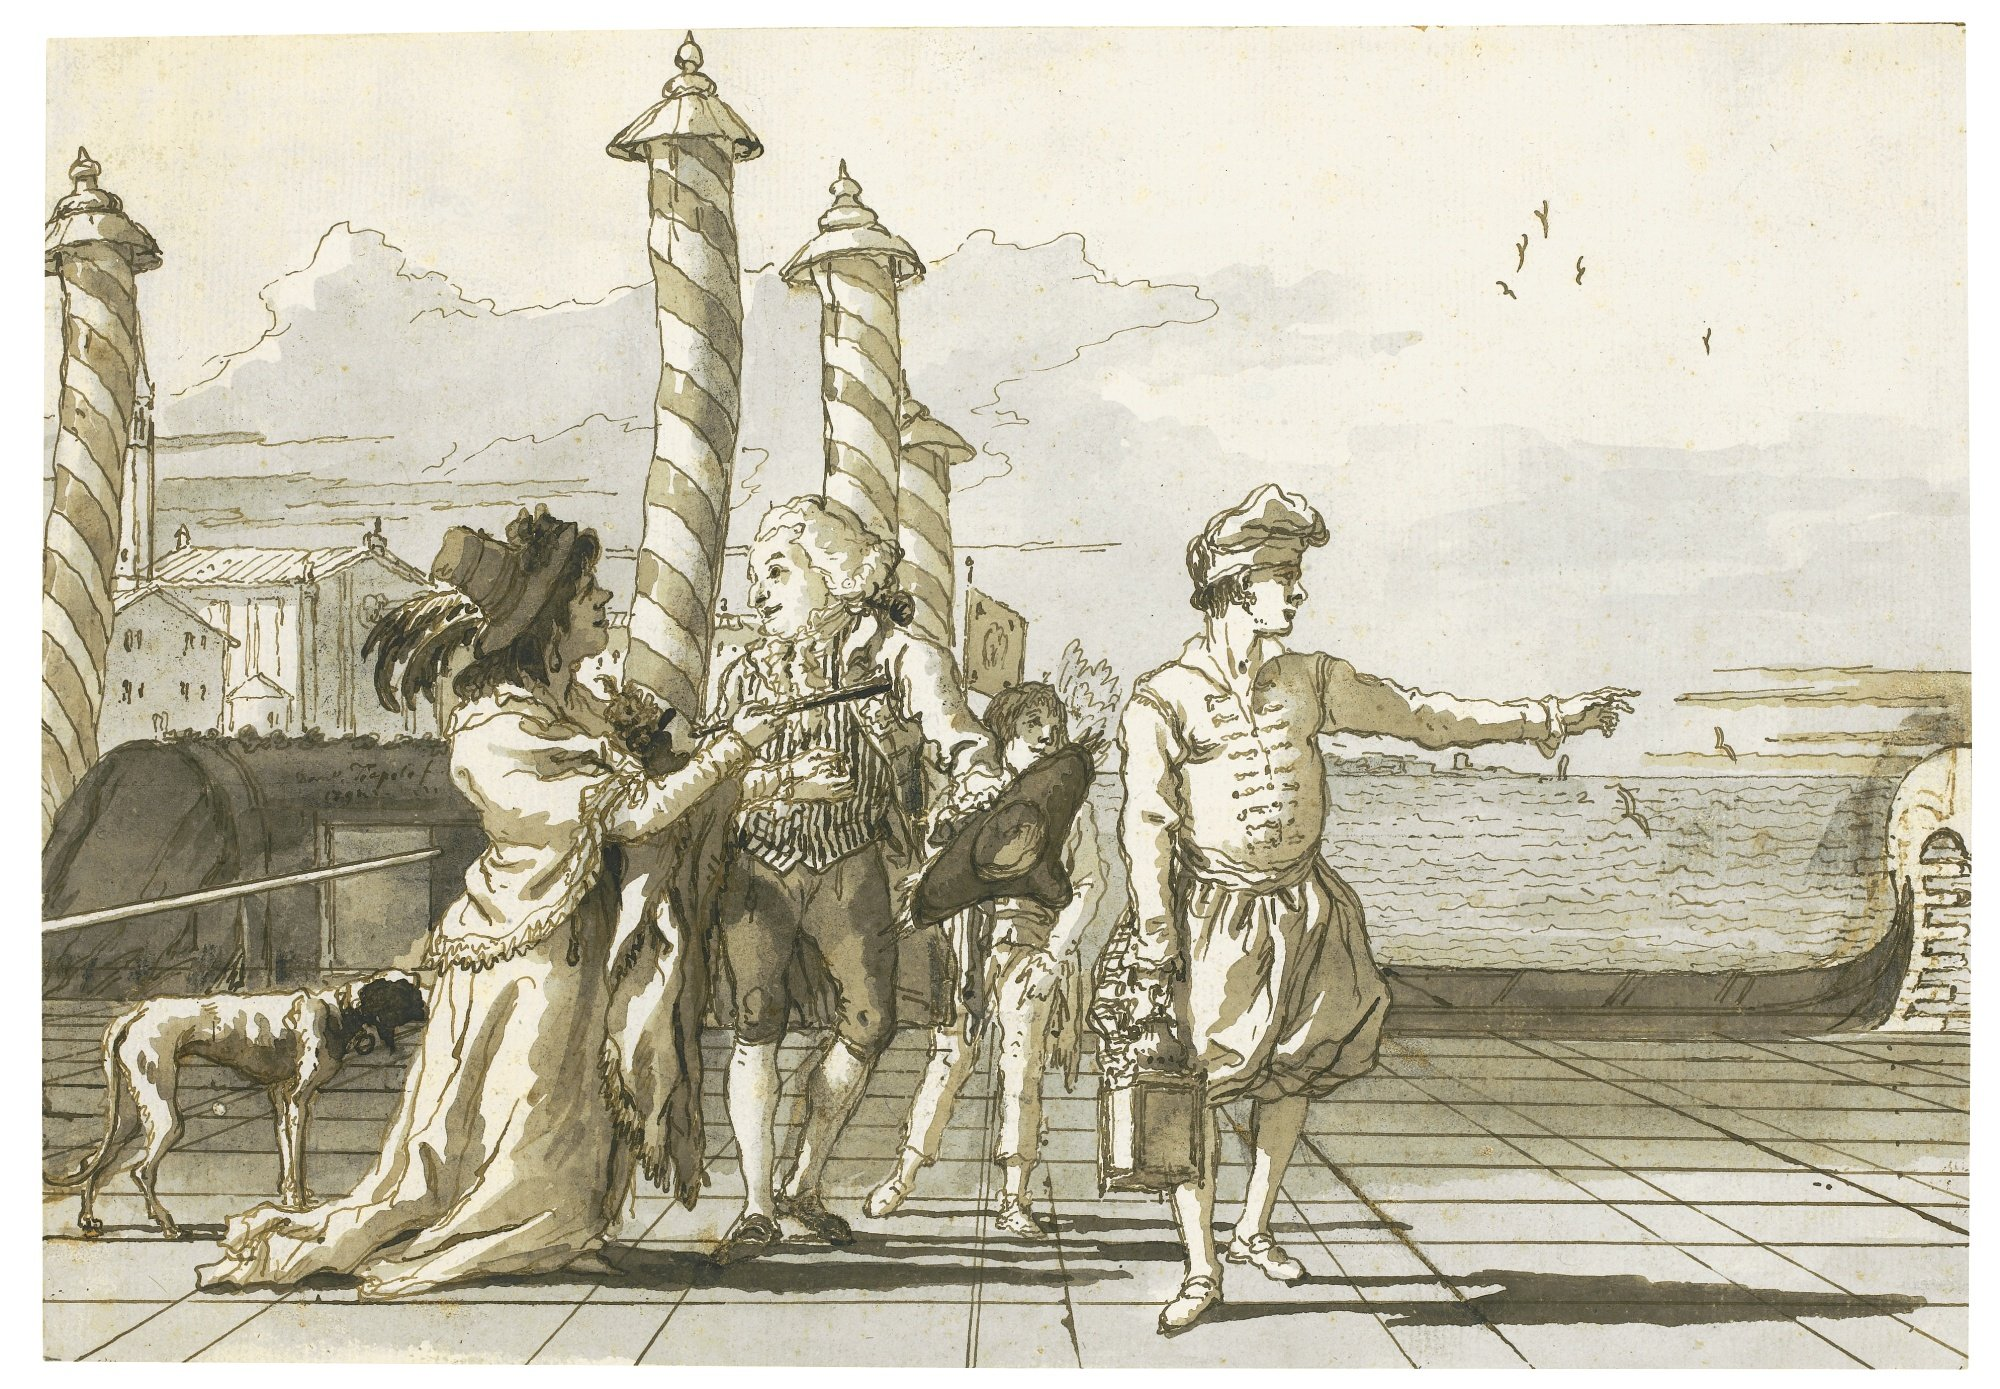 Showing the way to a noble couple, drawing by Domenico Tiepolo